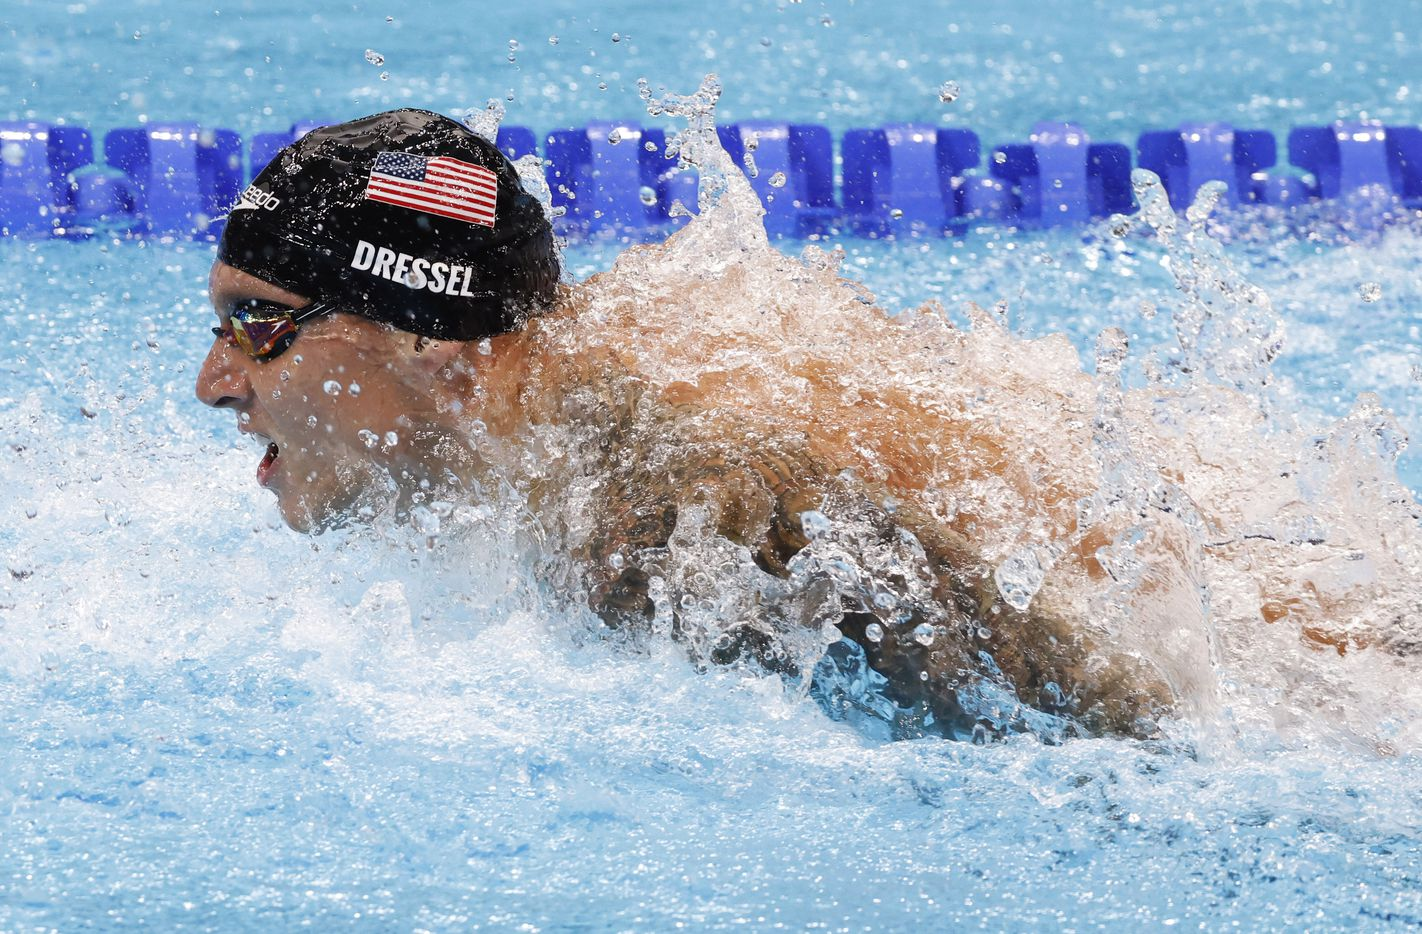 USA's Caeleb Dressel competes in the men's 4x100 meter medley relay final during the postponed 2020 Tokyo Olympics at Tokyo Aquatics Centre, on Sunday, August 1, 2021, in Tokyo, Japan. USA earned a gold medal, setting a new world record with a time of 3:26.78. (Vernon Bryant/The Dallas Morning News)